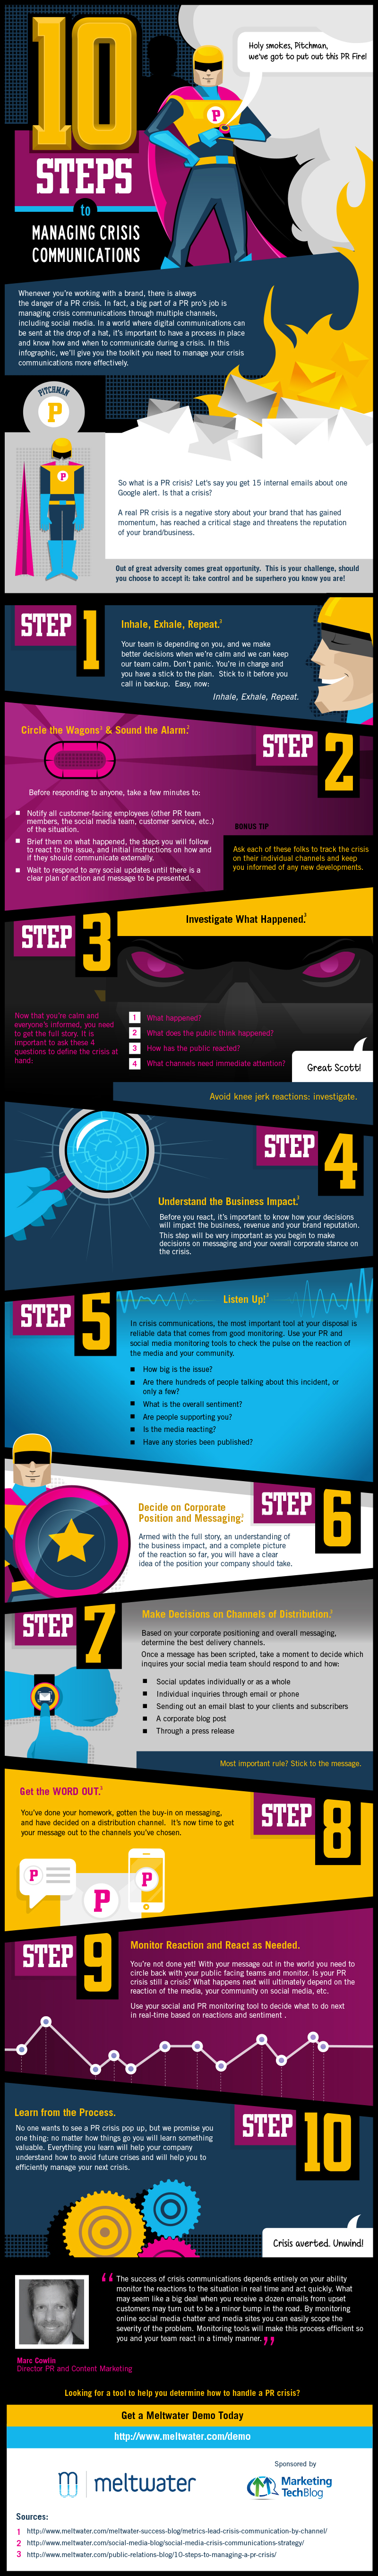 Meltwater-Infographic-mod3